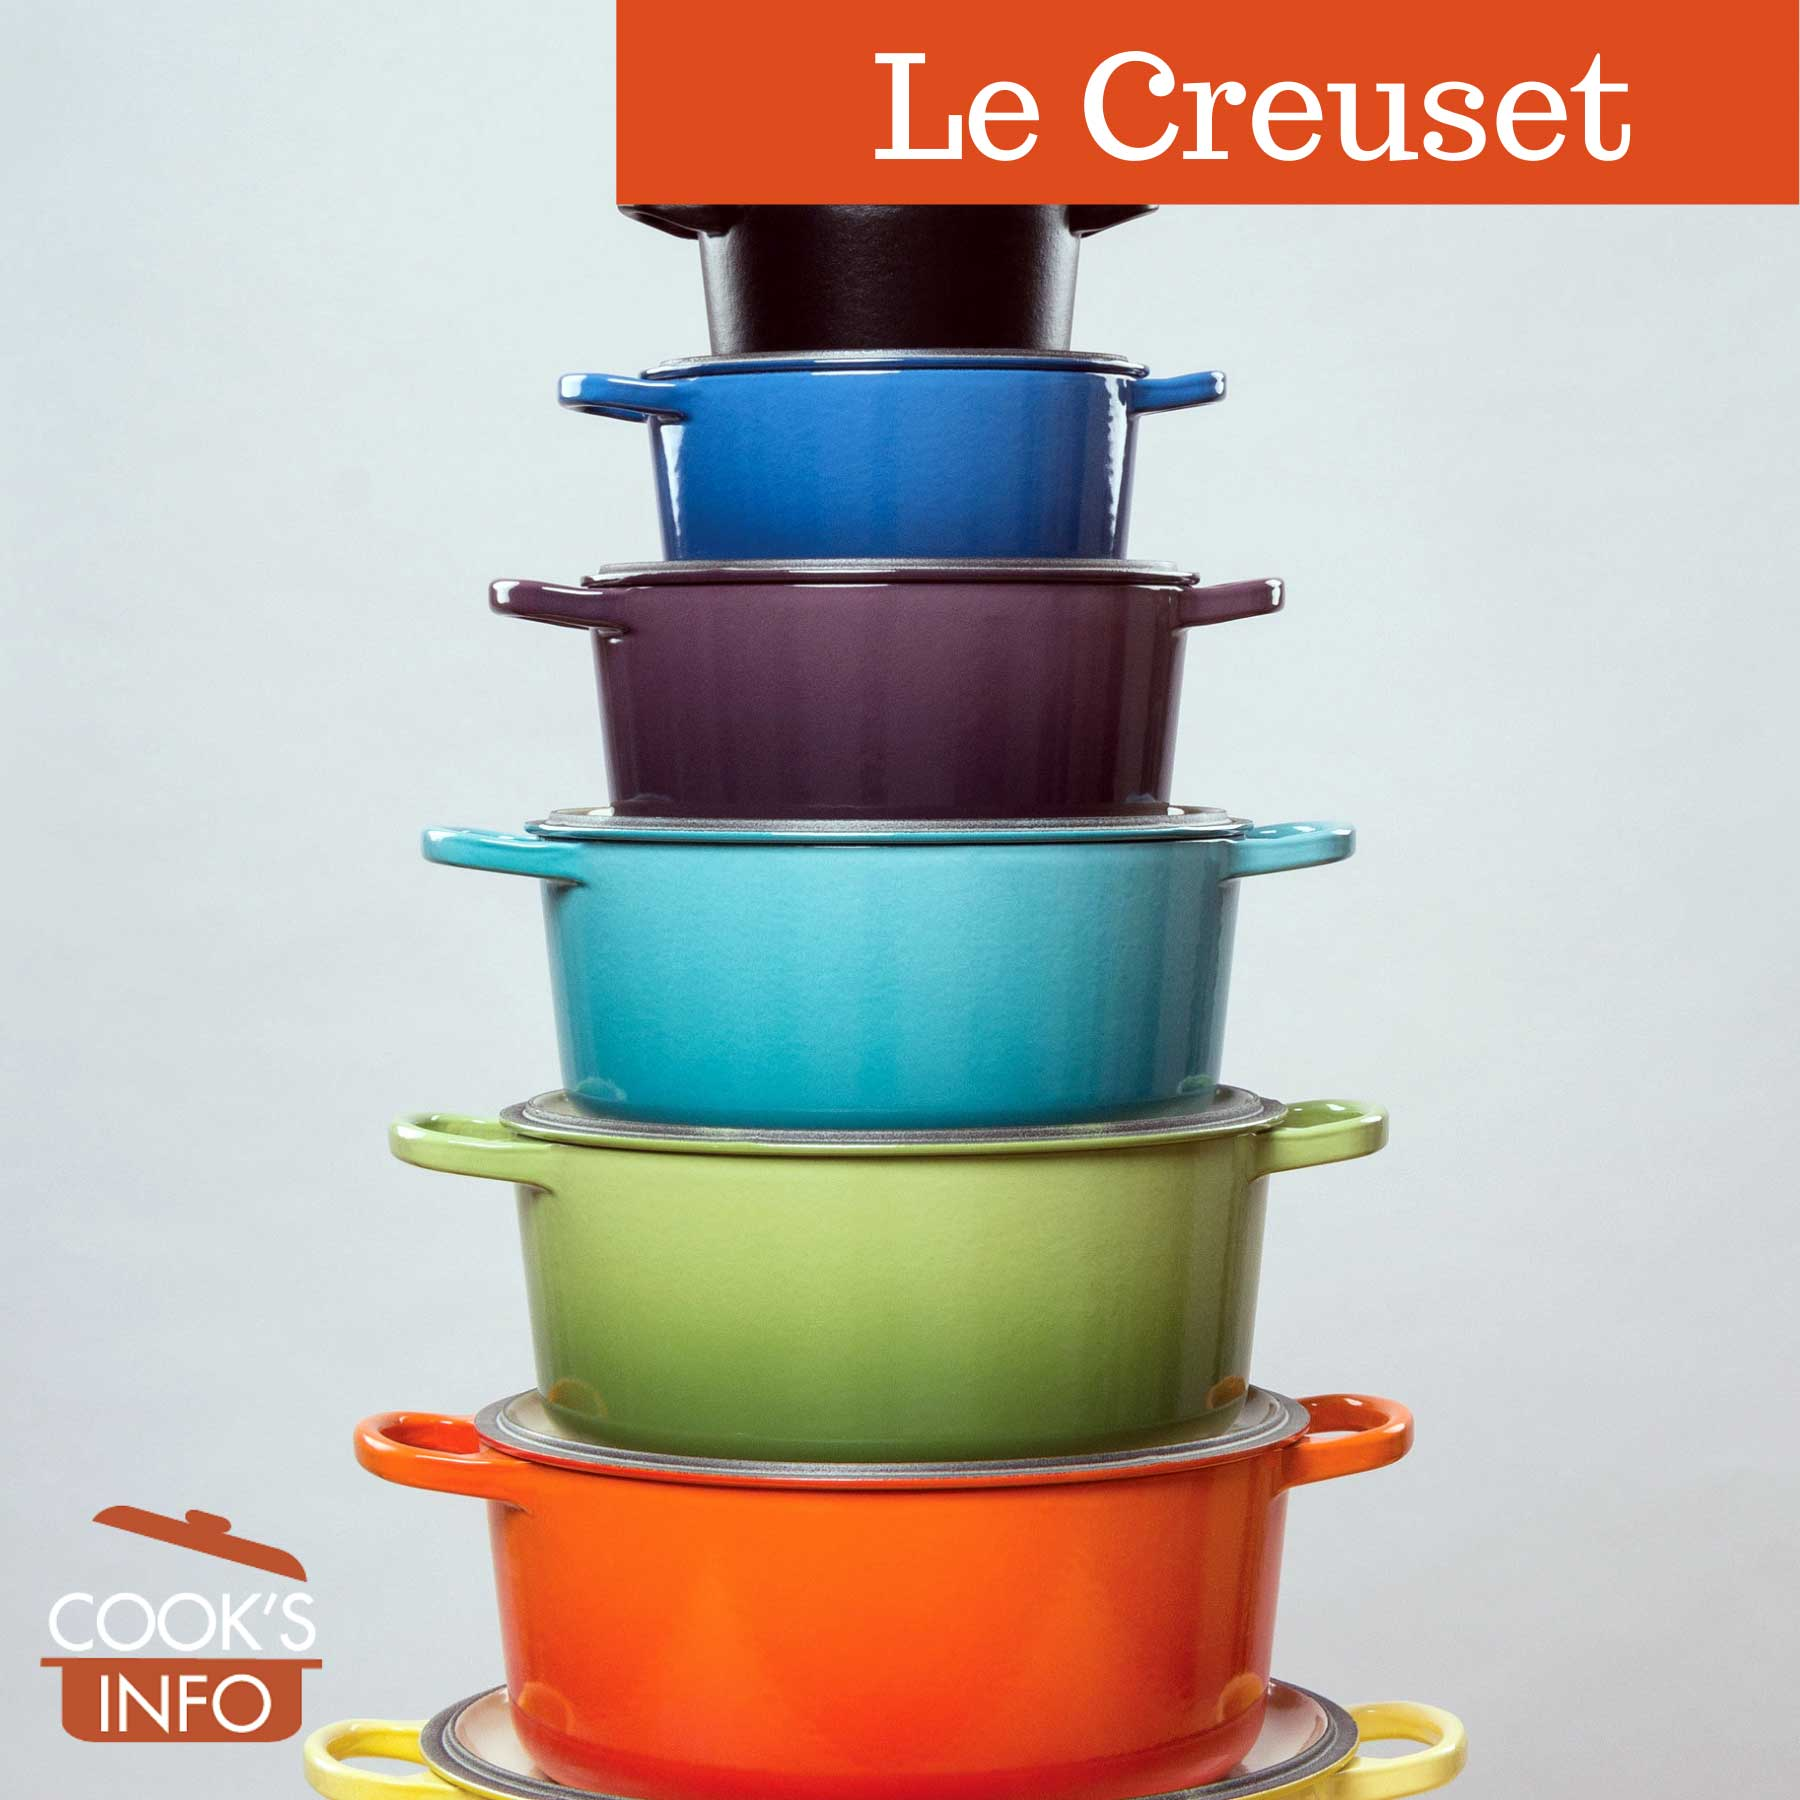 Stack of le creuset casseroles